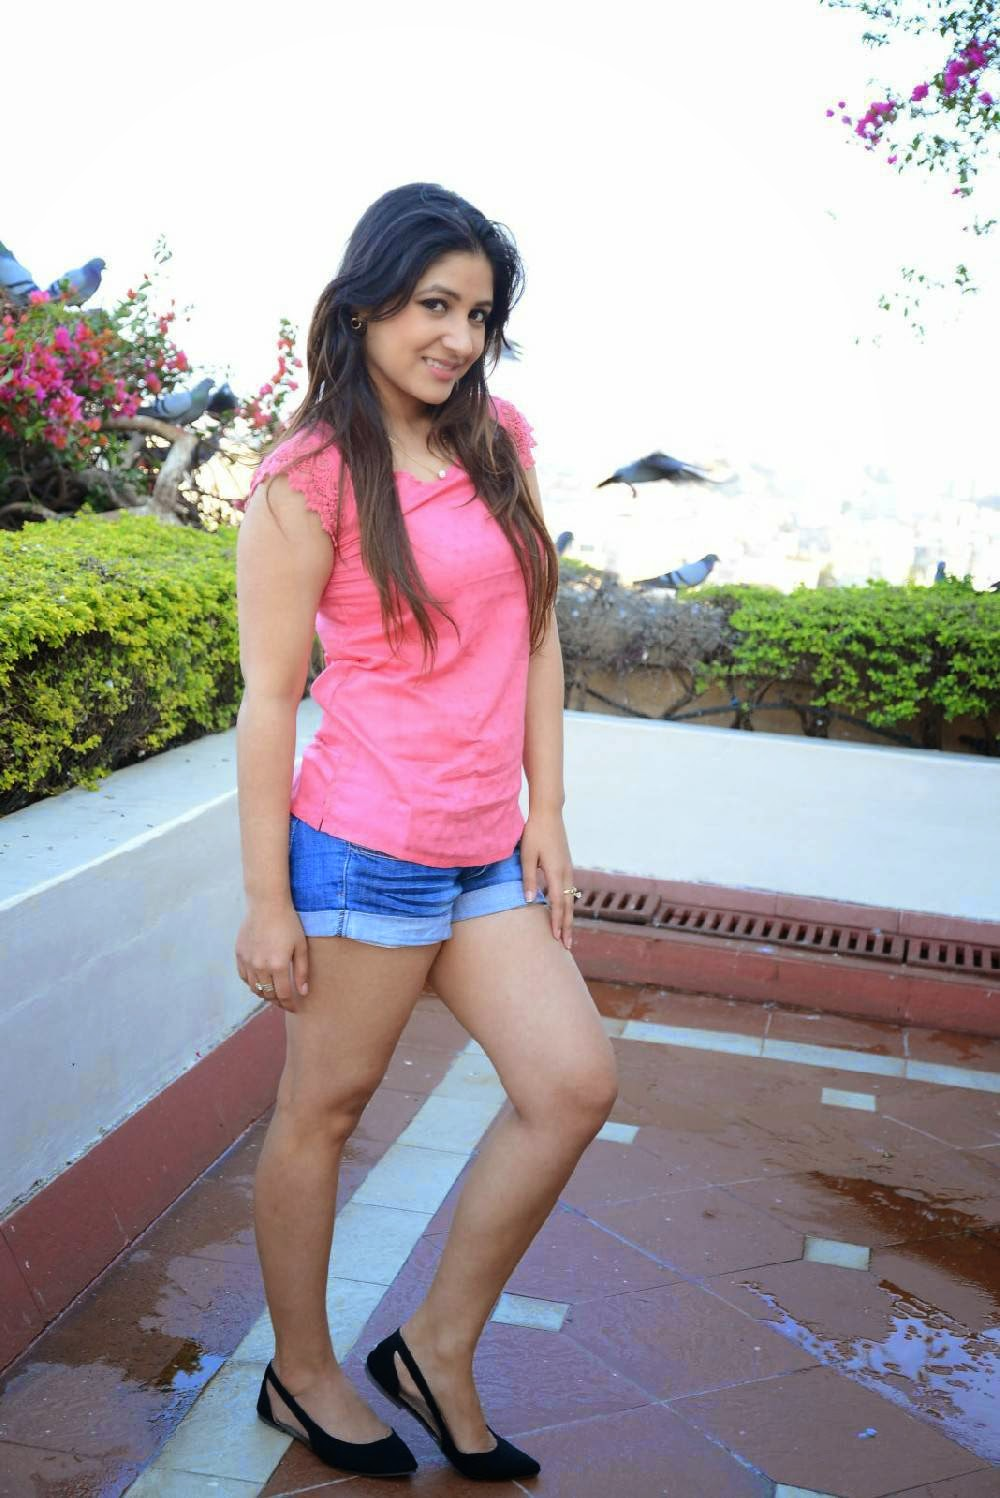 Actress Prabhjeet Kaur Latest Cute Hot Pink Top And Blue Short Dress Spicy Thighs Show Photos Gallery